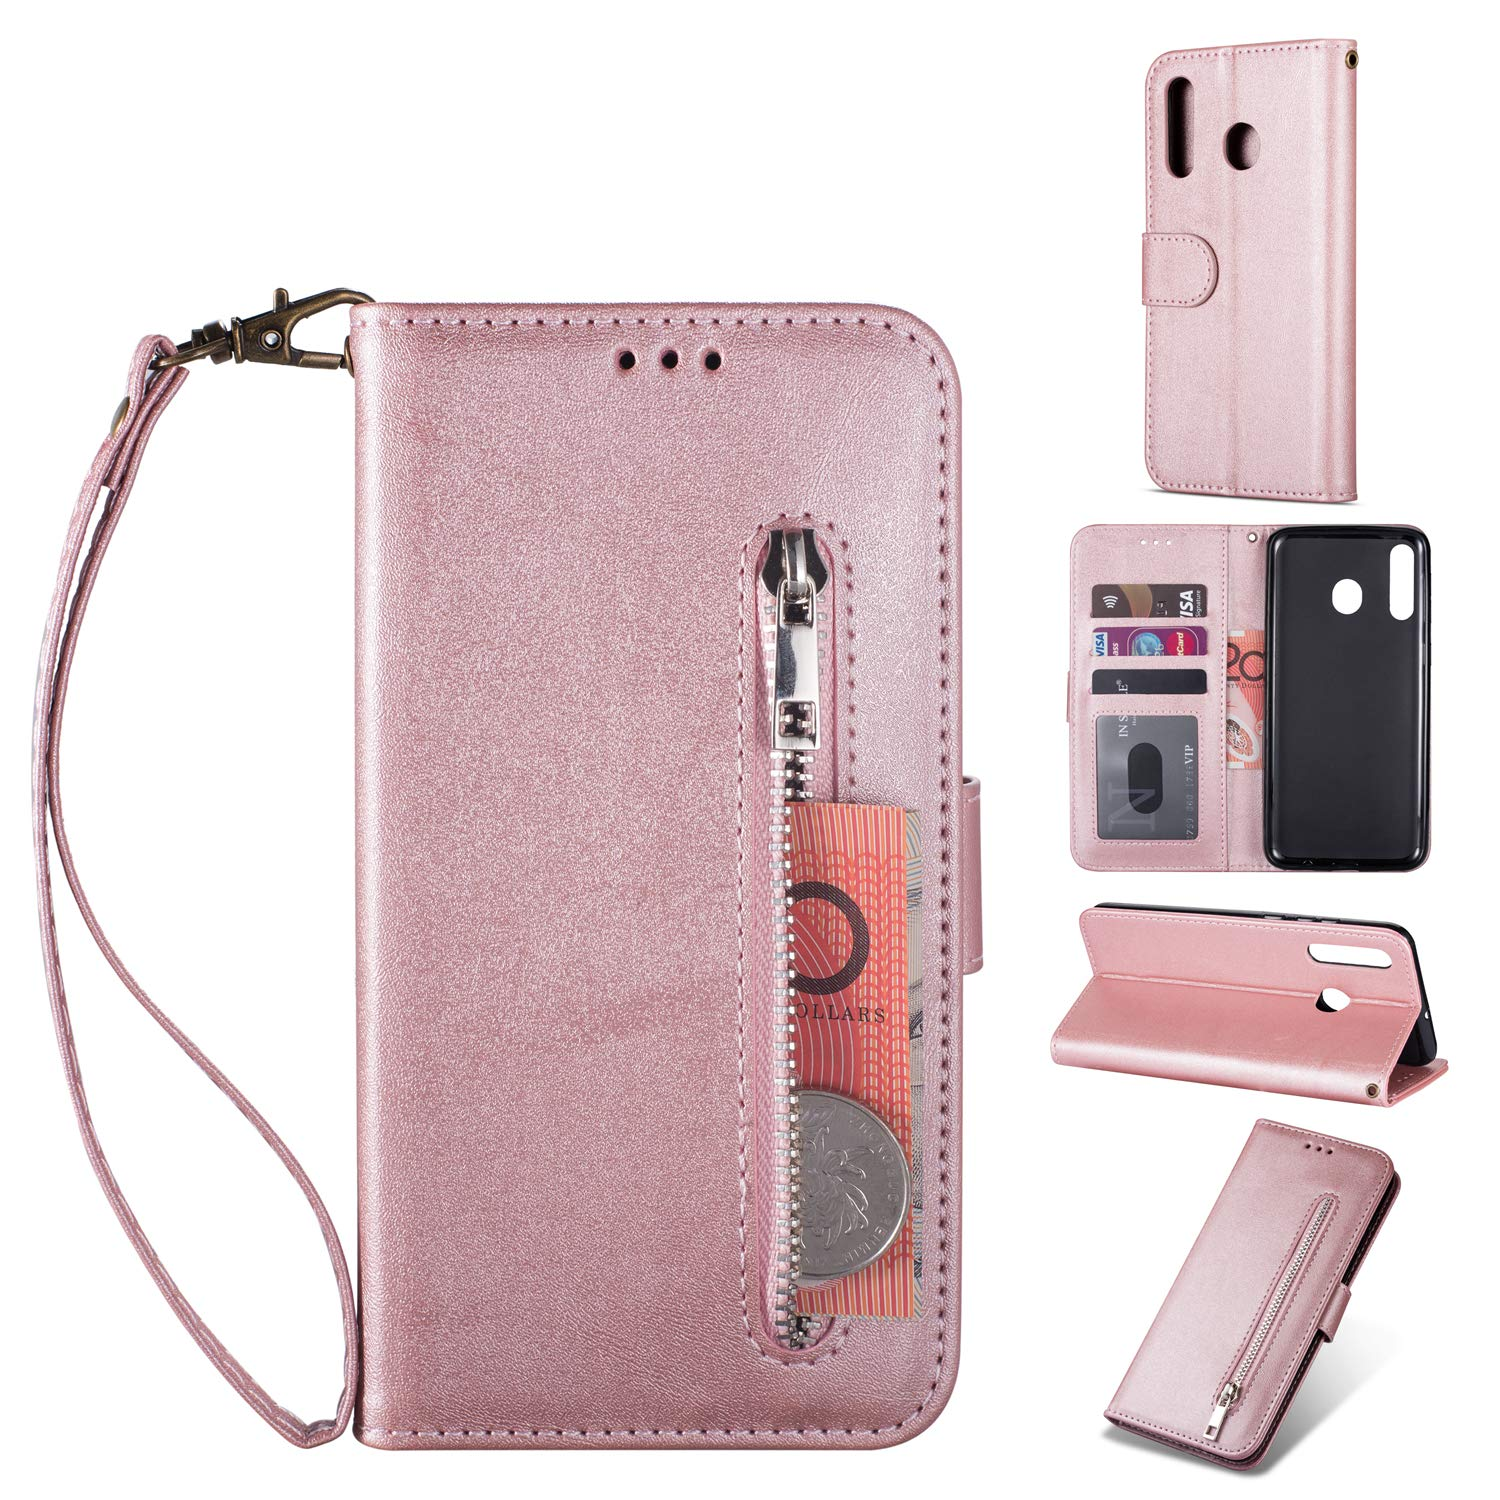 Zipper Wallet Case with Black Dual-use Pen for Samsung Galaxy A20/A30,Aoucase Money Coin Pocket Card Holder Shock Resistant Strap Purse PU Leather Case for Samsung Galaxy A20/A30 - Rose Gold by Aoucase